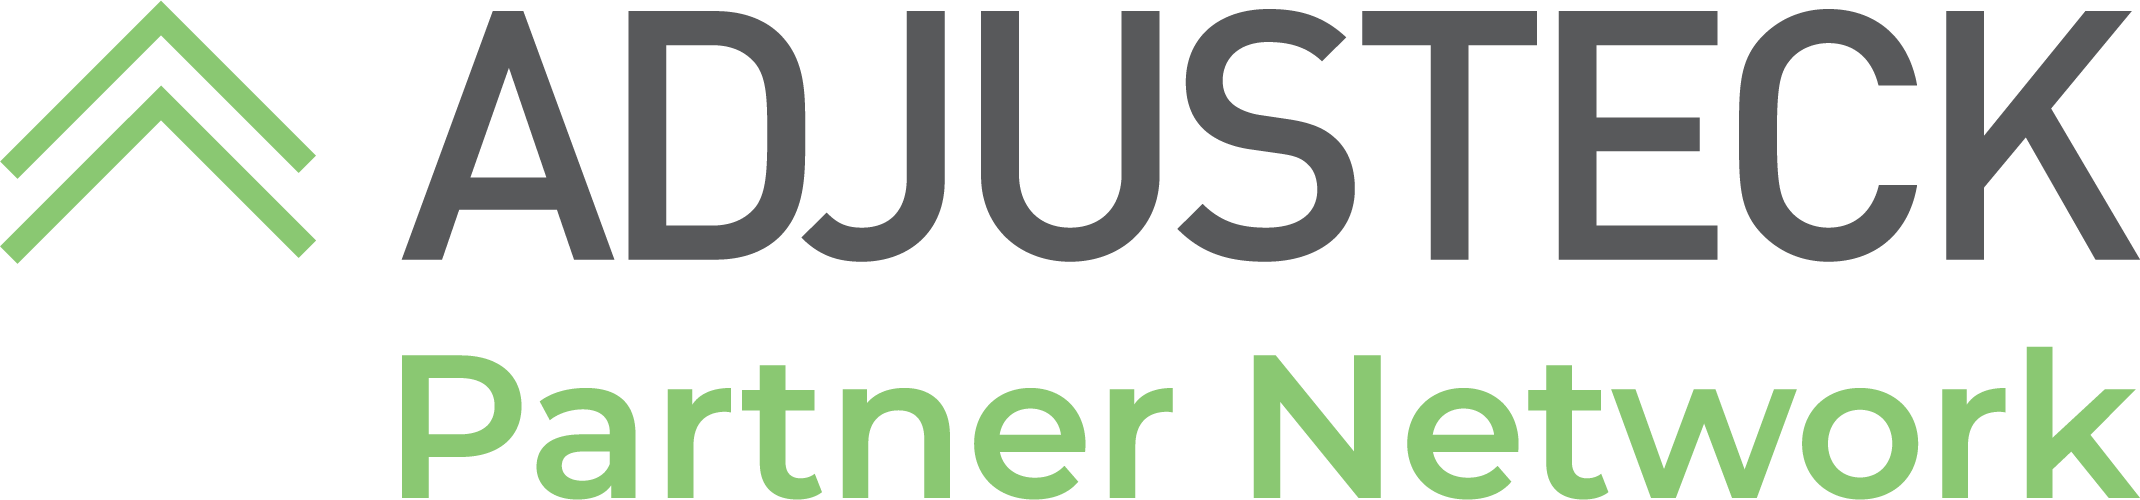 Adjusteck Partner Network